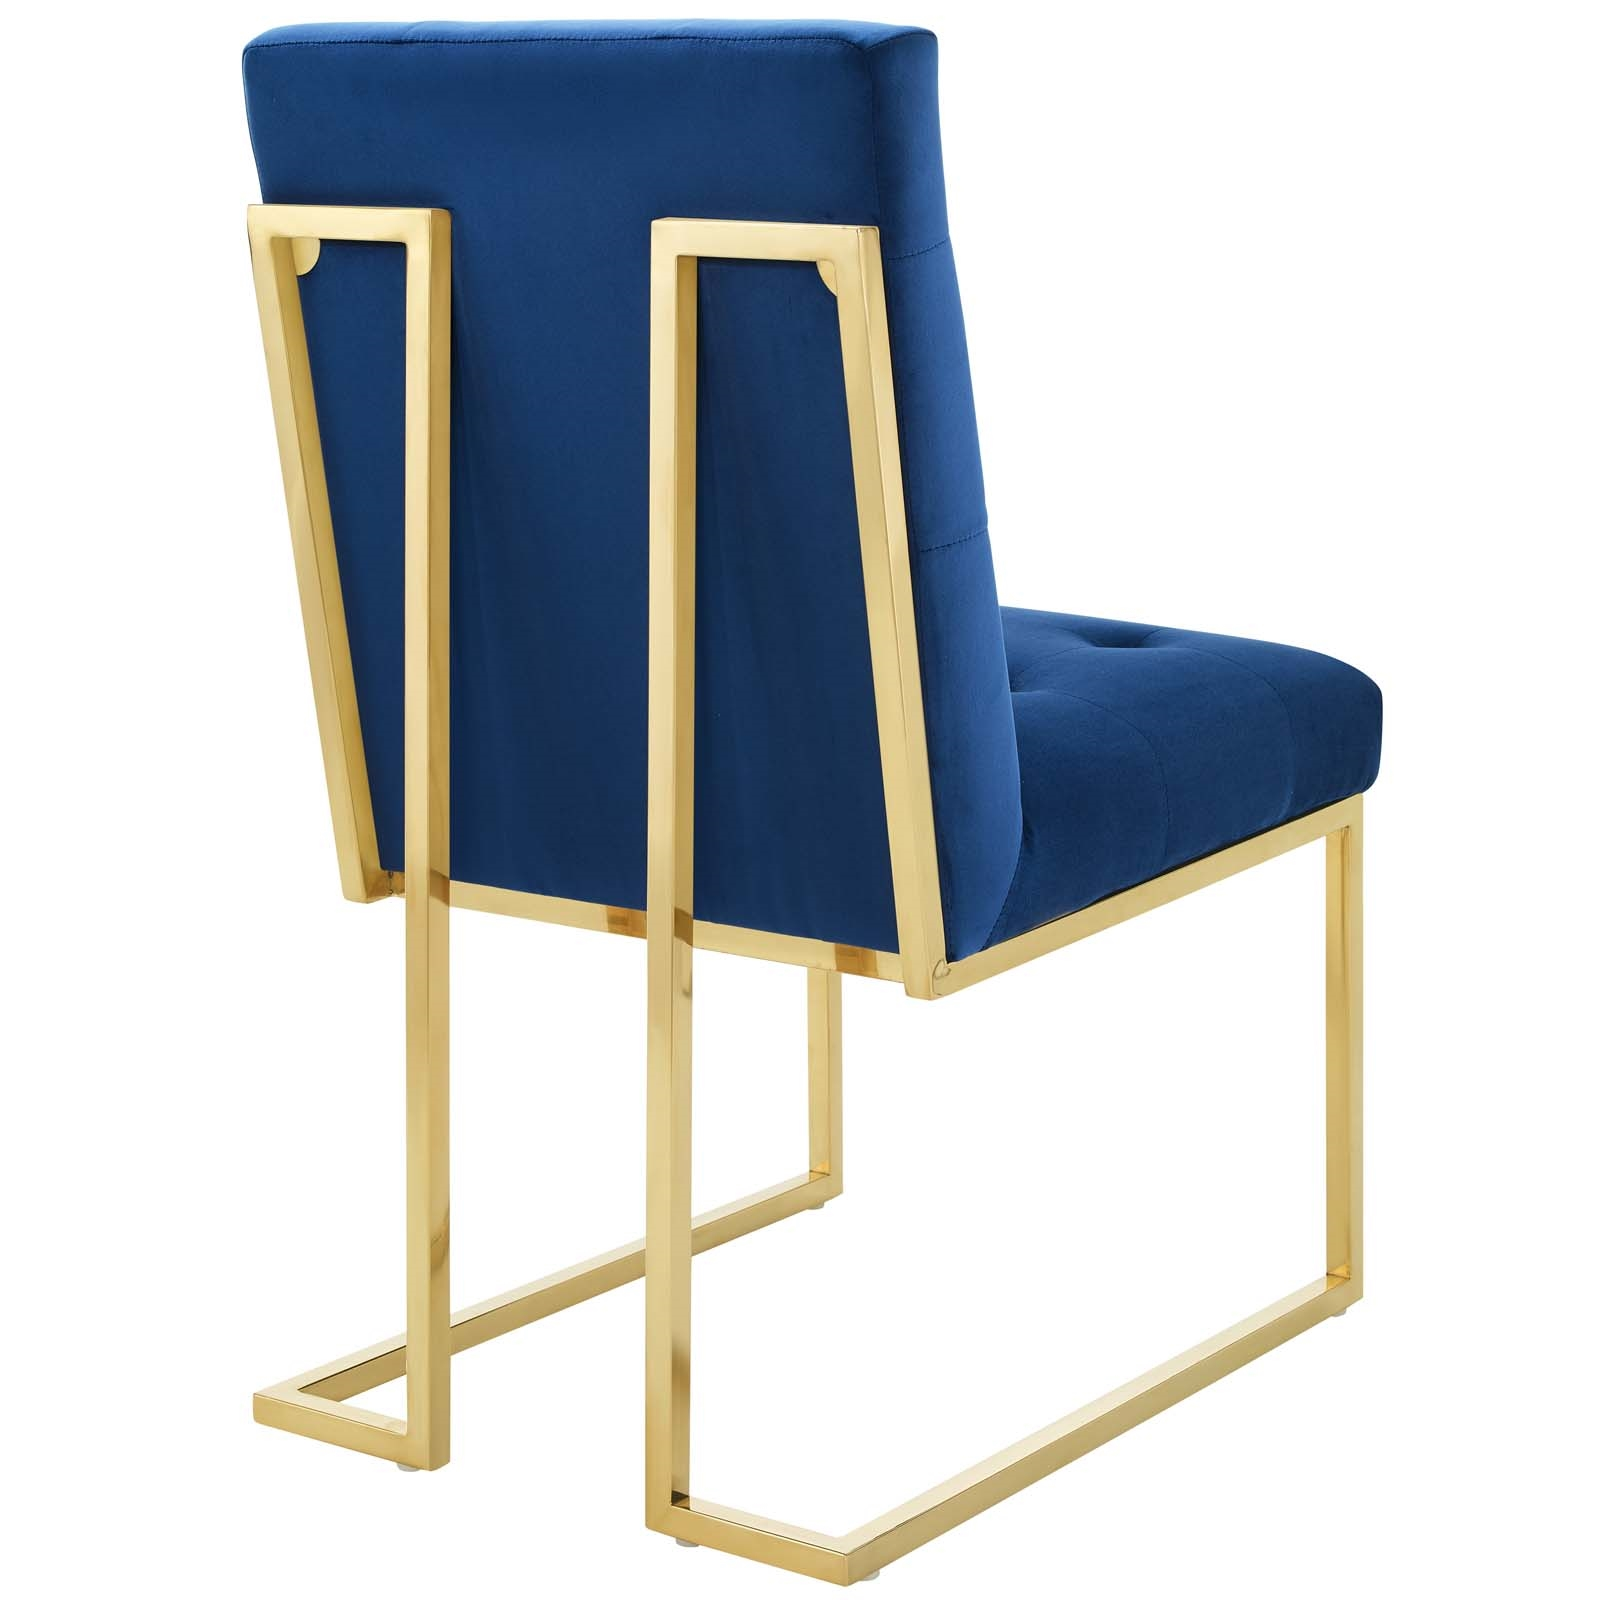 Privy Gold Stainless Steel Performance Velvet Dining Chair in Gold Navy